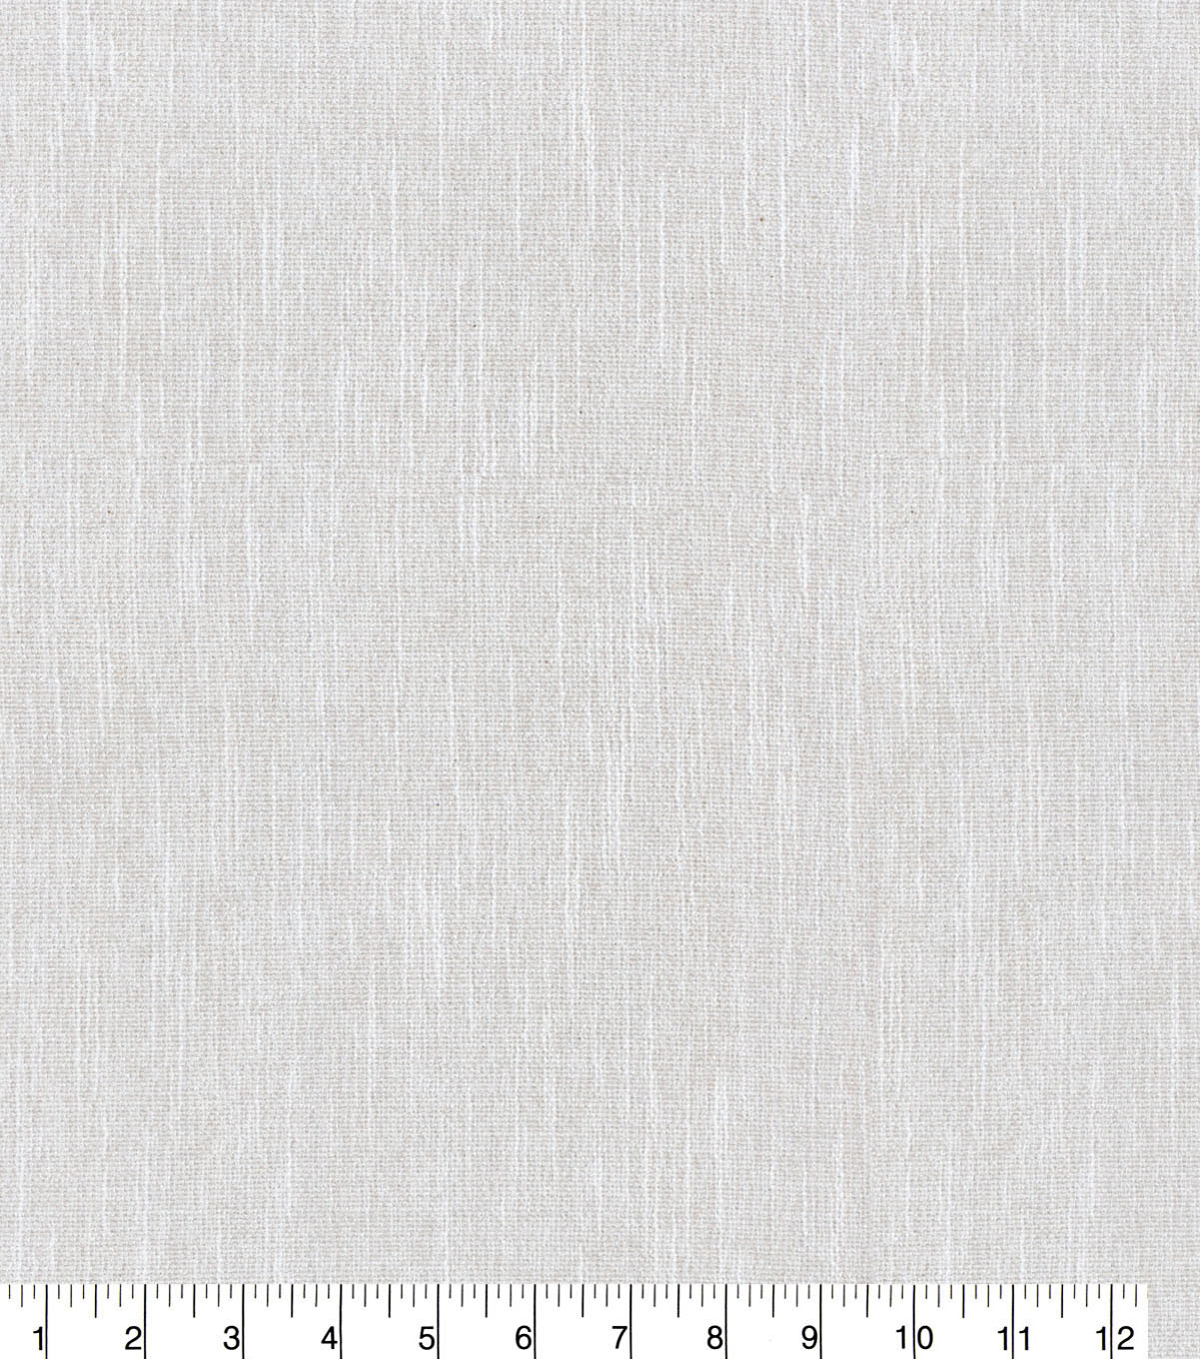 PKL Studio Upholstery Décor Fabric 9\u0022x9\u0022 Swatch-Connector Frost